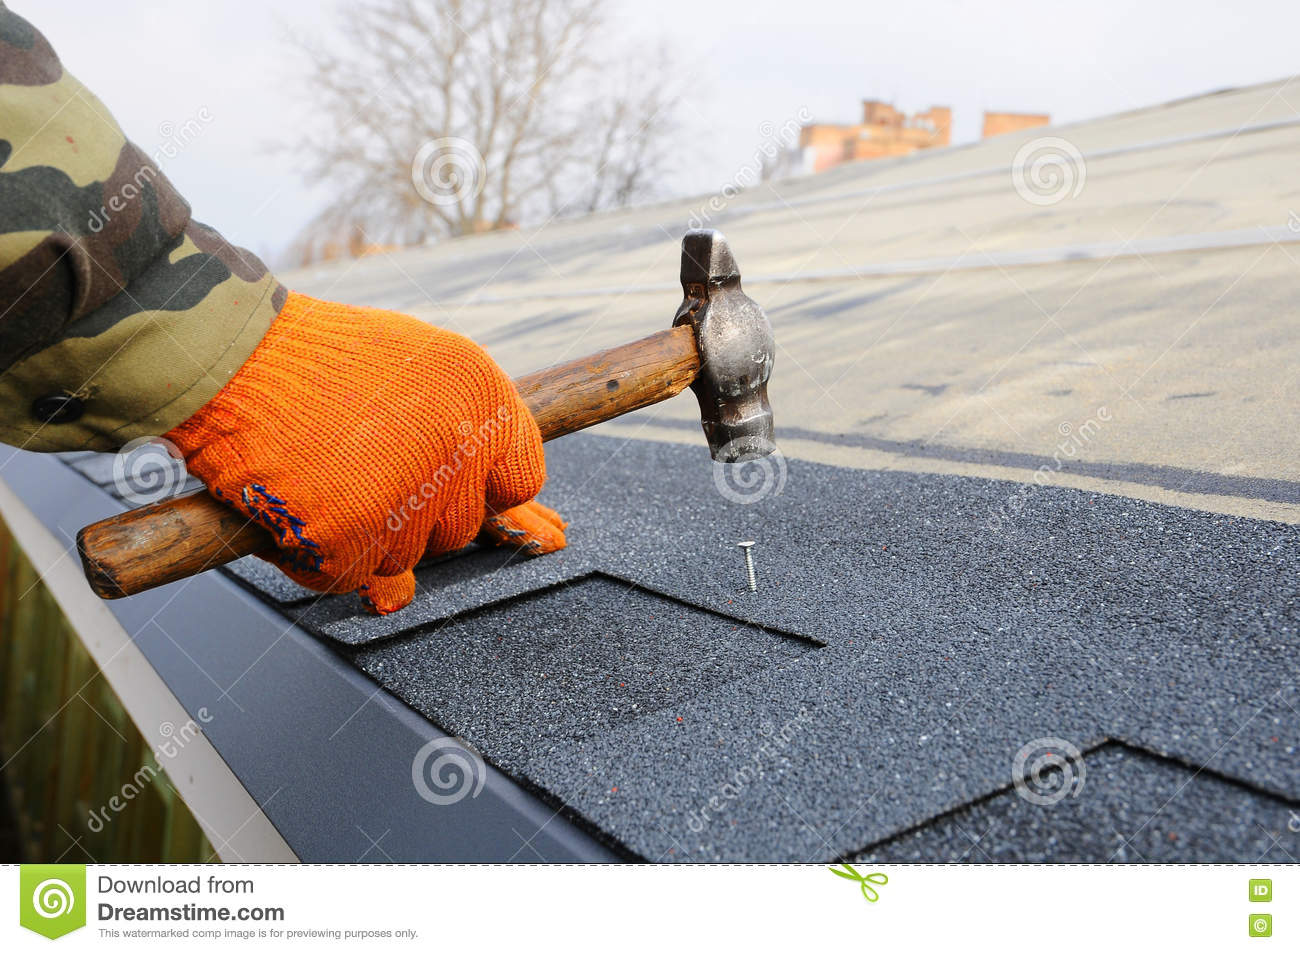 Worker hands installing bitumen roof shingles. Worker Hammer in Nails on the Roof. Roofer is hammering a Nail in the Roof Shingles